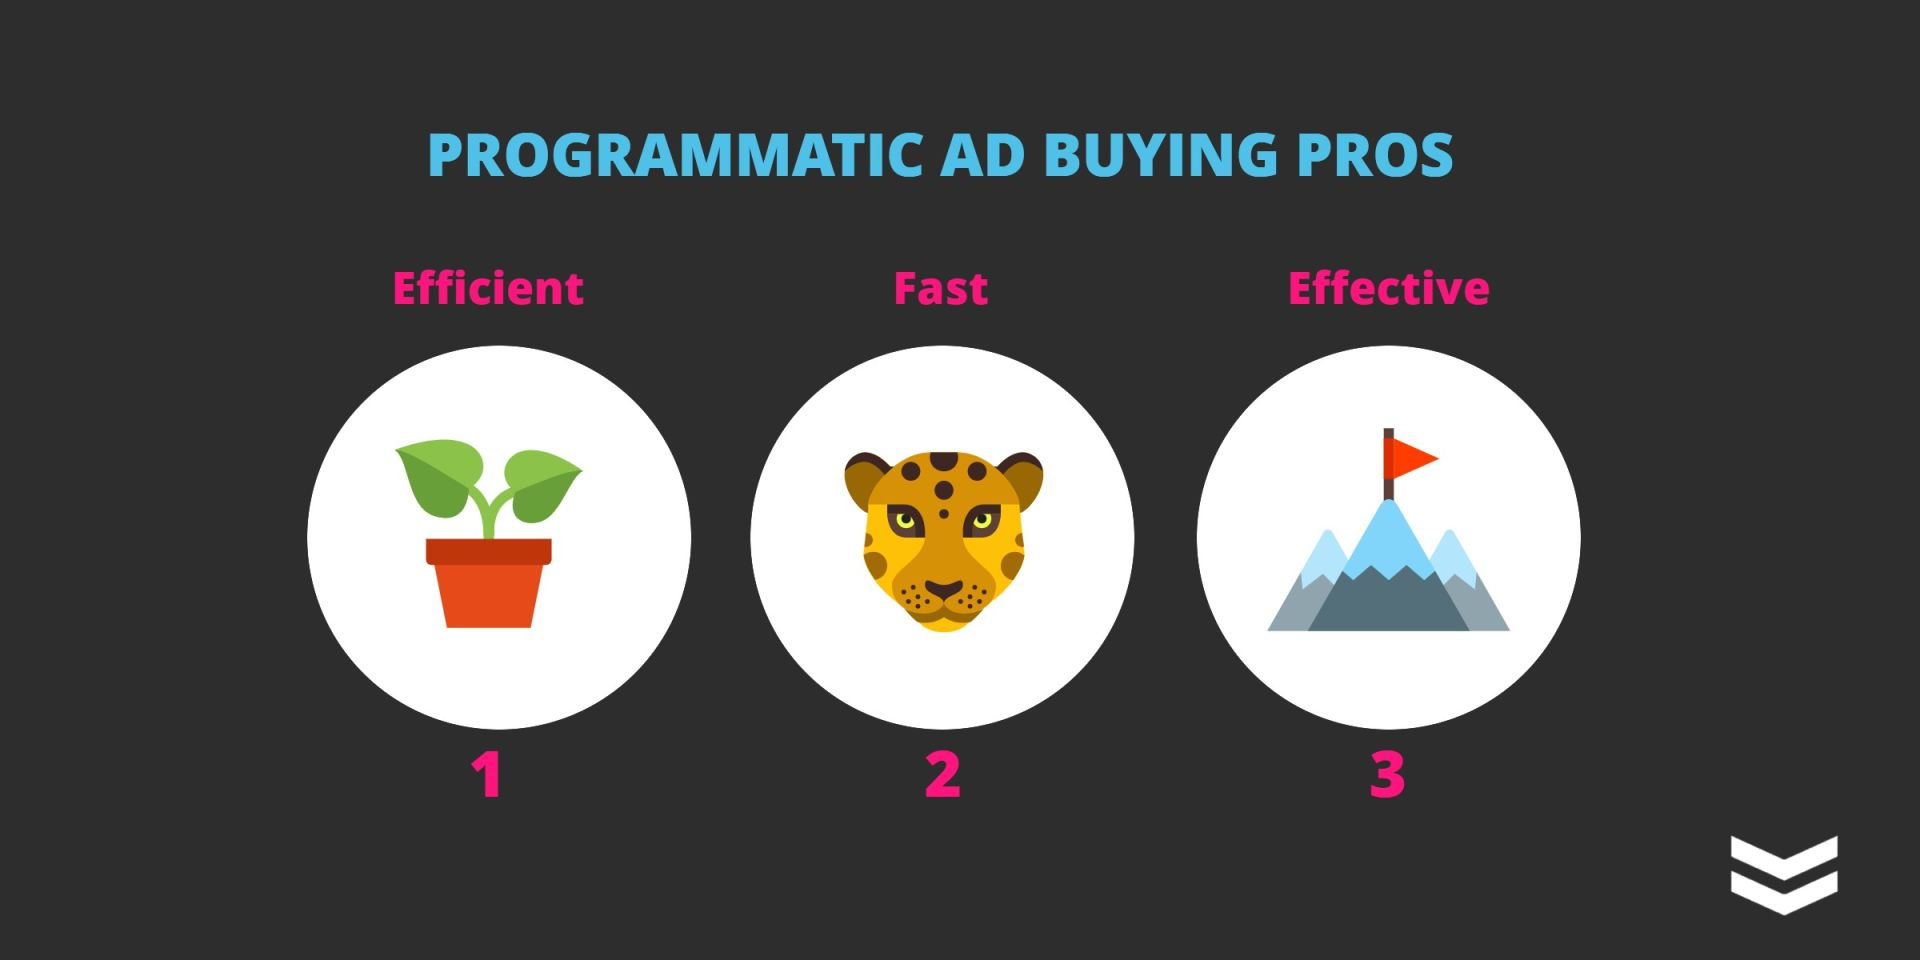 pros and cons of programmatic graphic pros of programmatic advertising